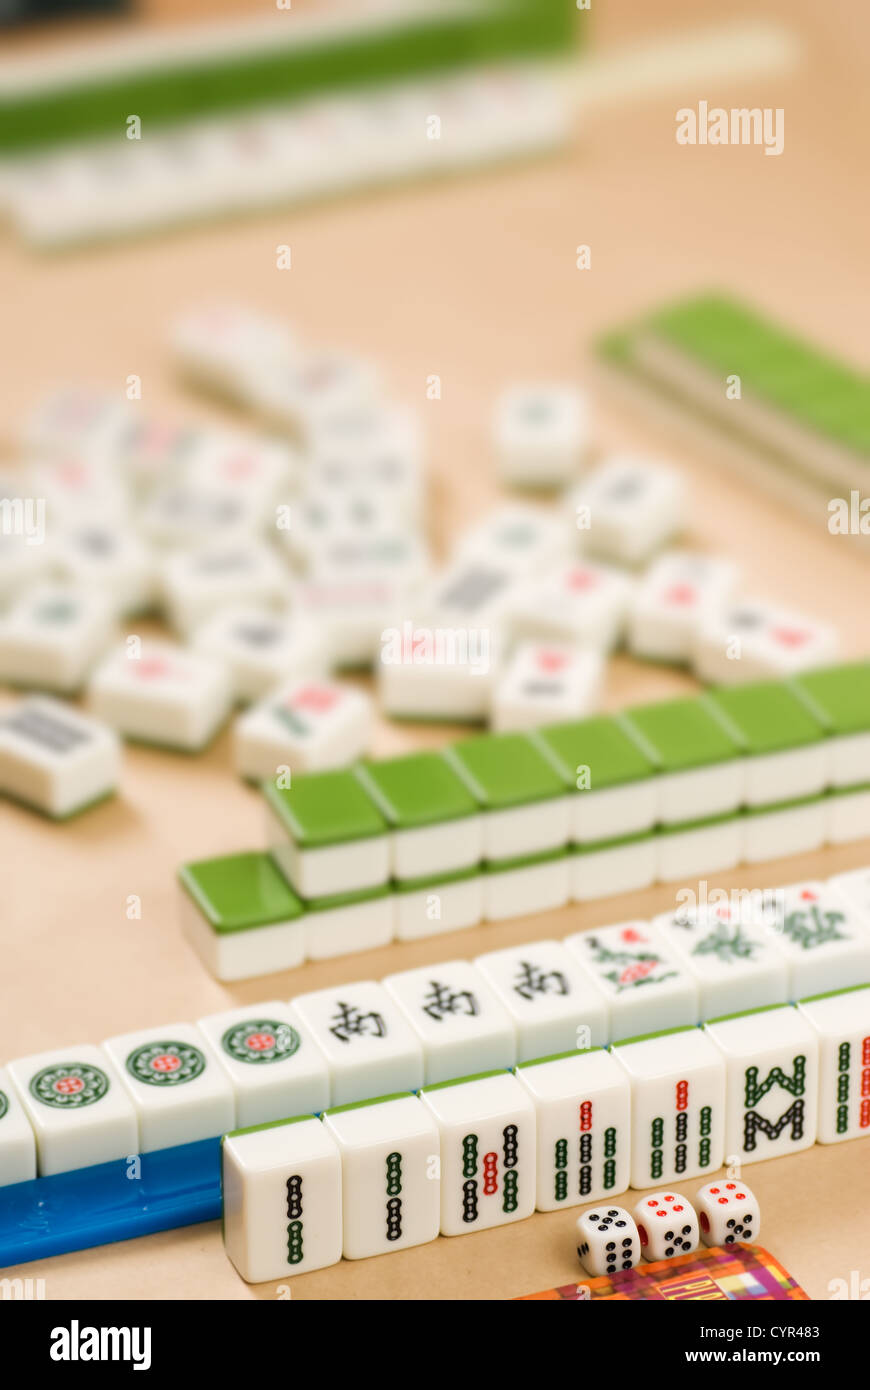 Gambling In Chinese V Mahjong V Traditional Game With